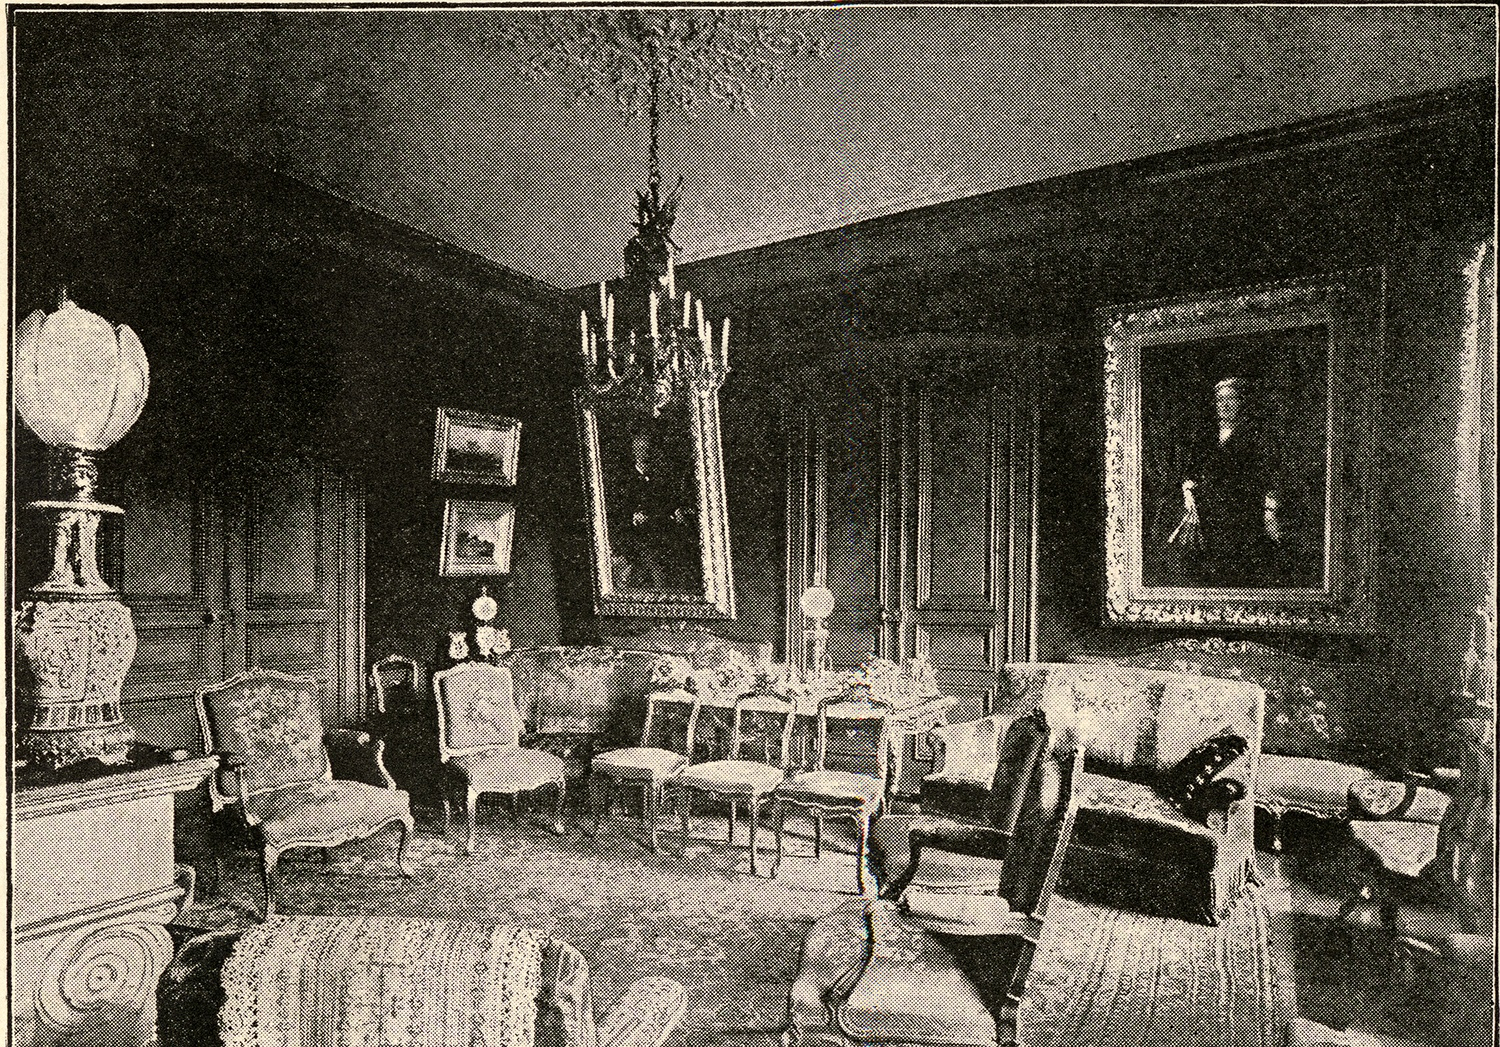 Jules Verne's grand salon in his house in Amiens, 1894. Courtesy of Wikimedia Commons.